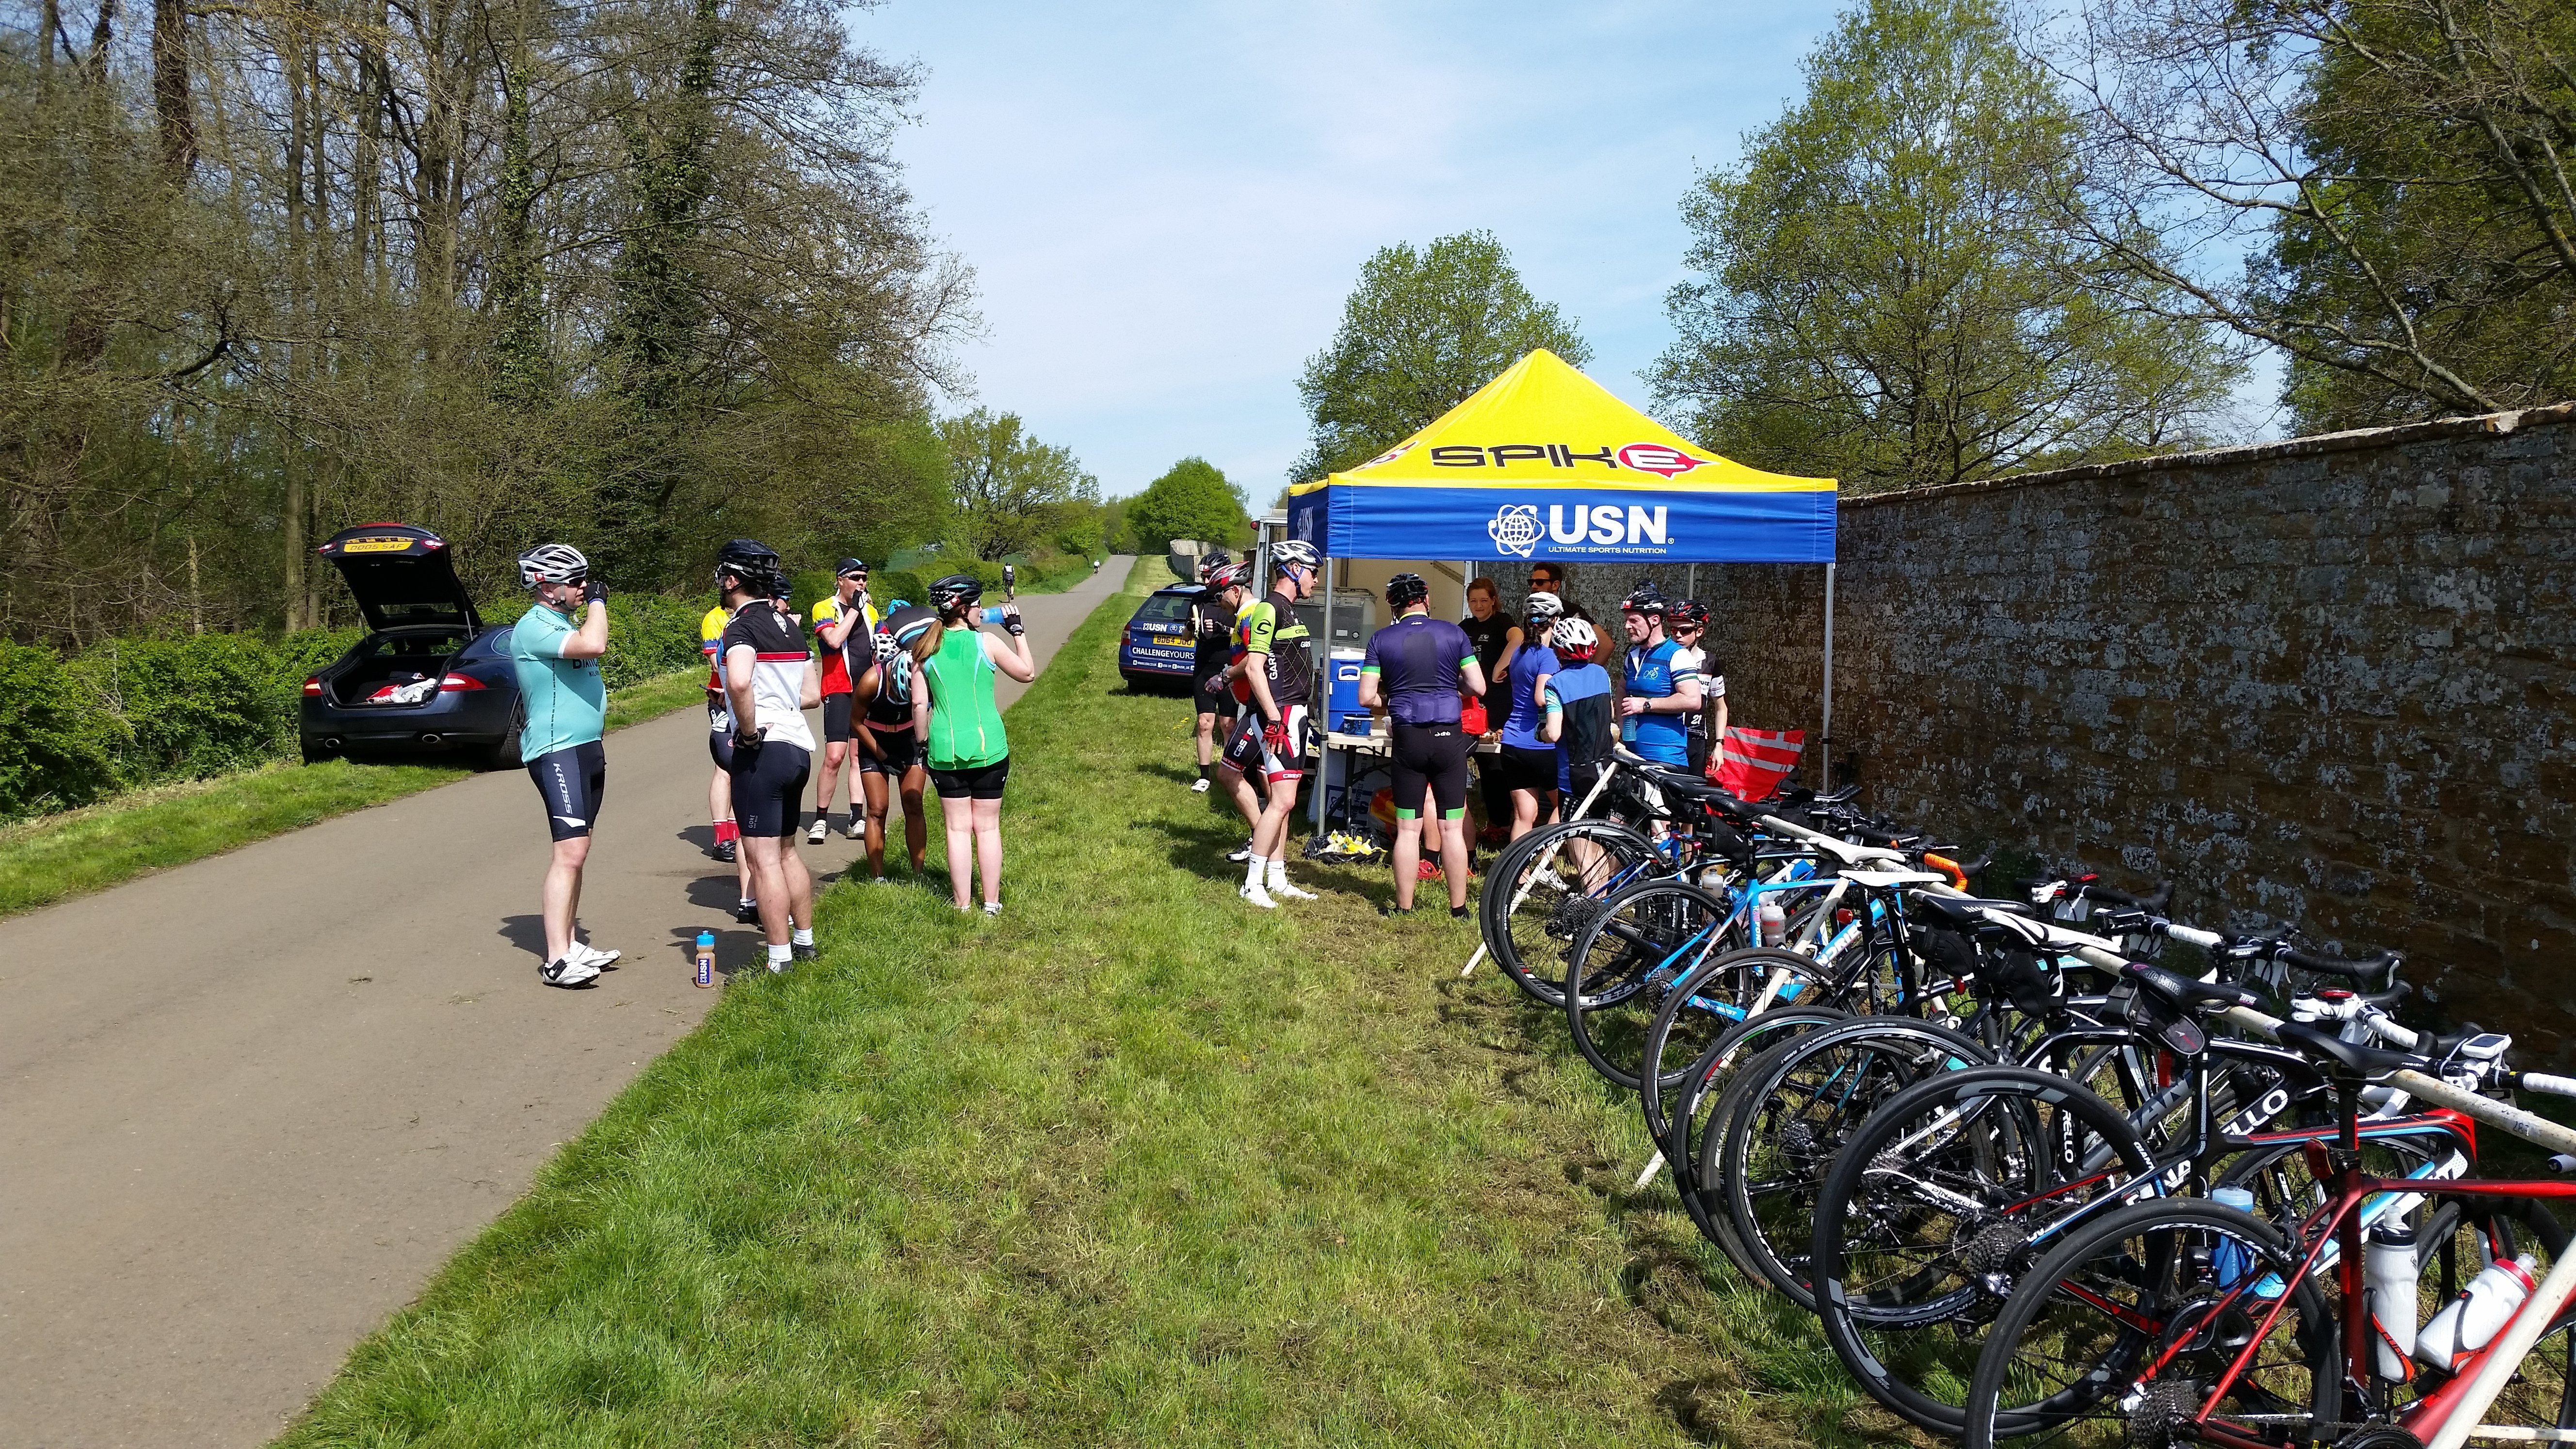 Squires & Spires Feed Station